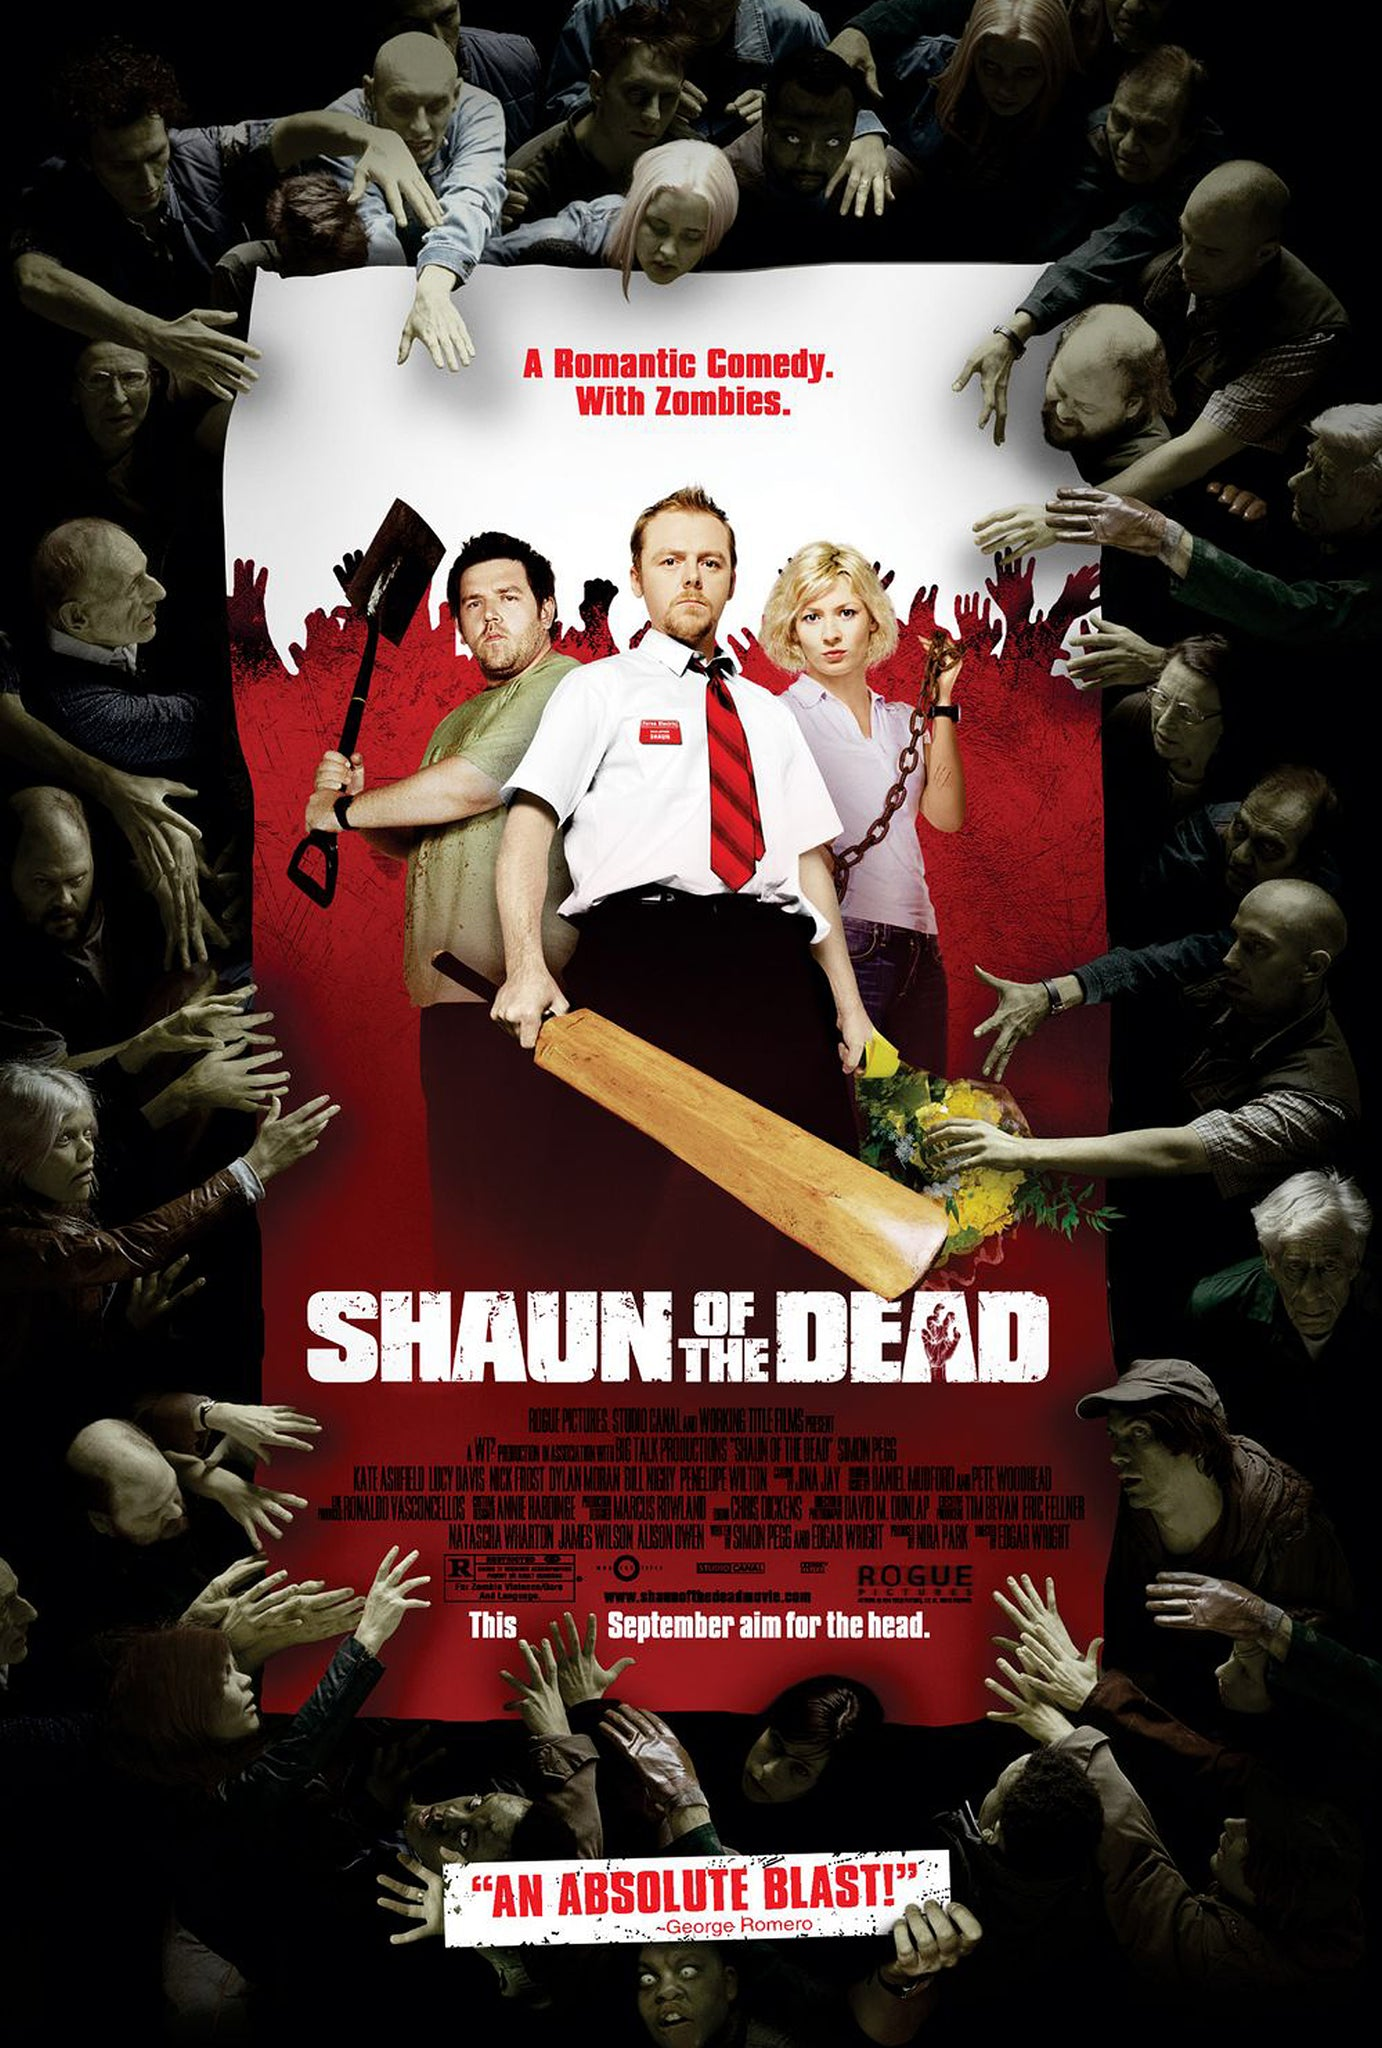 SHAWN OF THE DEAD (2004)